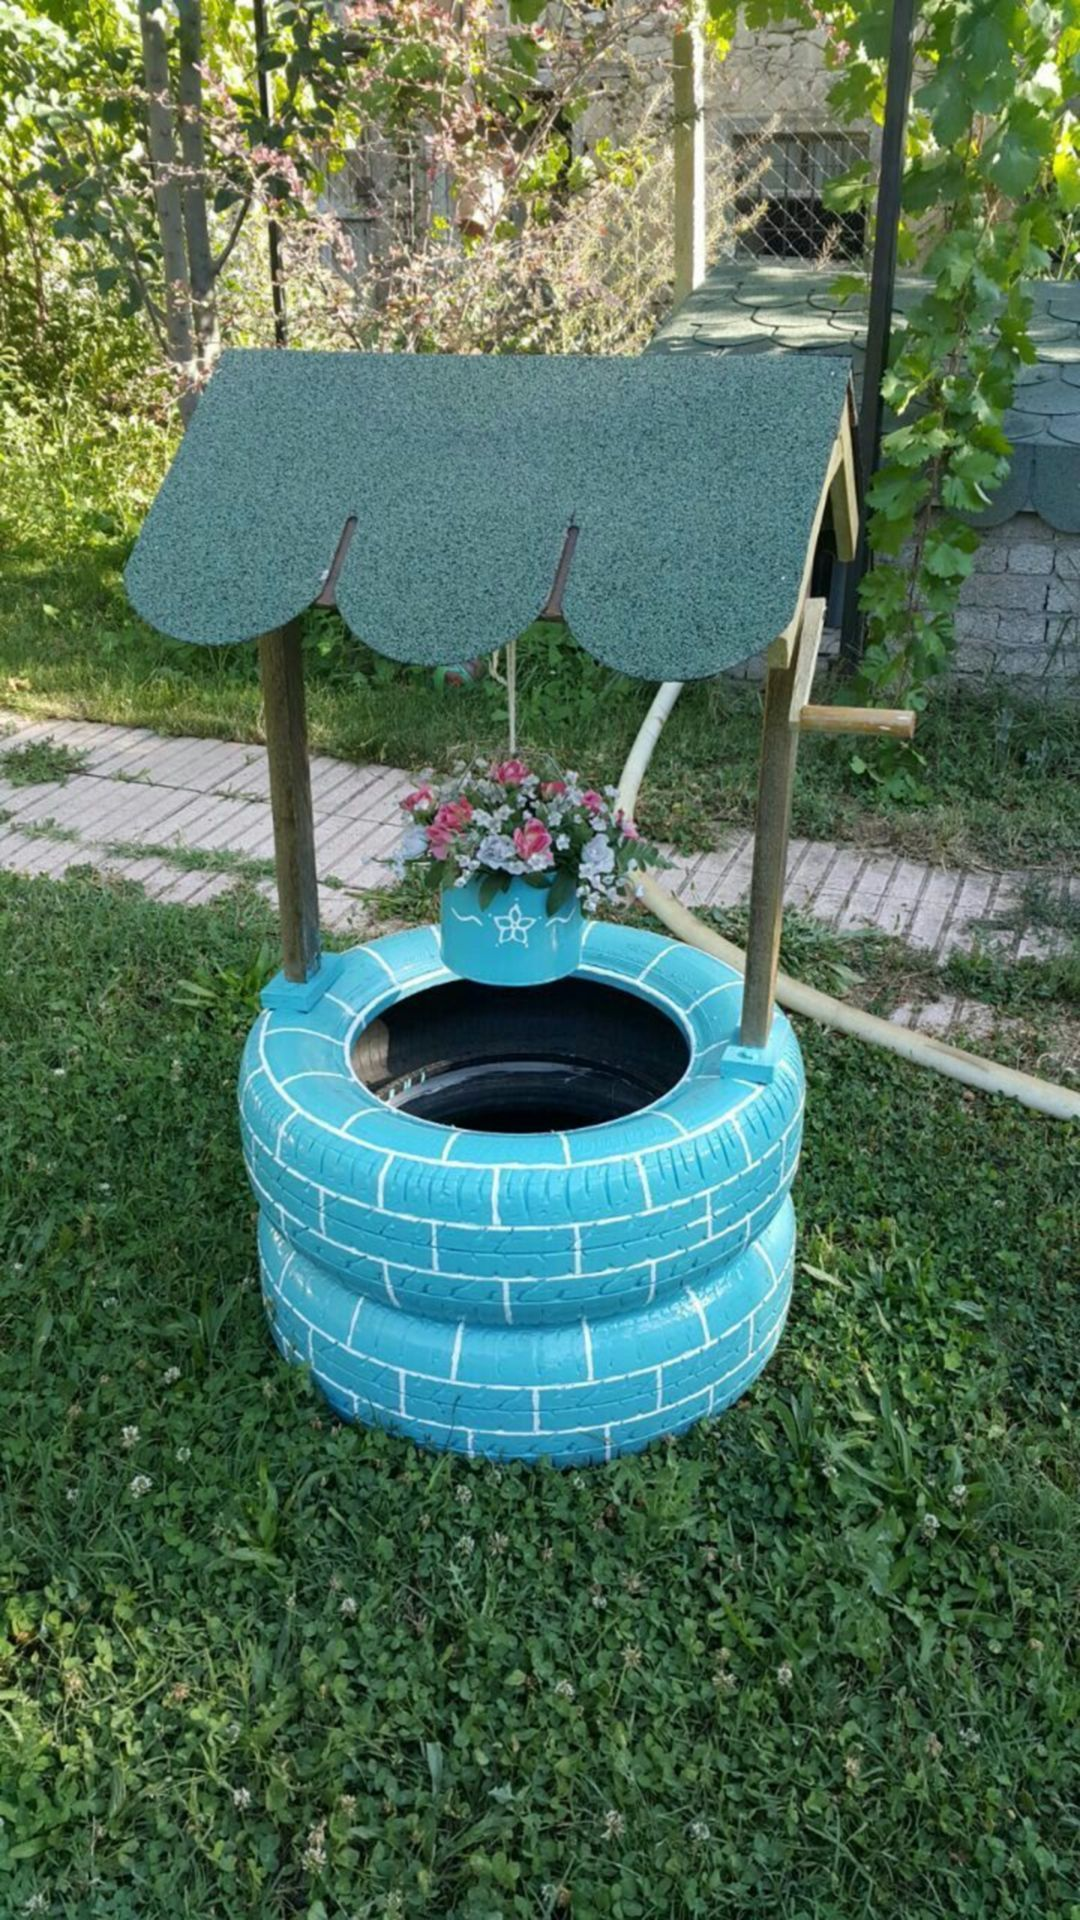 Phenomenon 30 Impressive Diy Tire Planters Ideas For Your Garden To Amaze Everyone Https Wahyuputra Com Garden Exterio Diy Planters Tire Planters Tire Garden